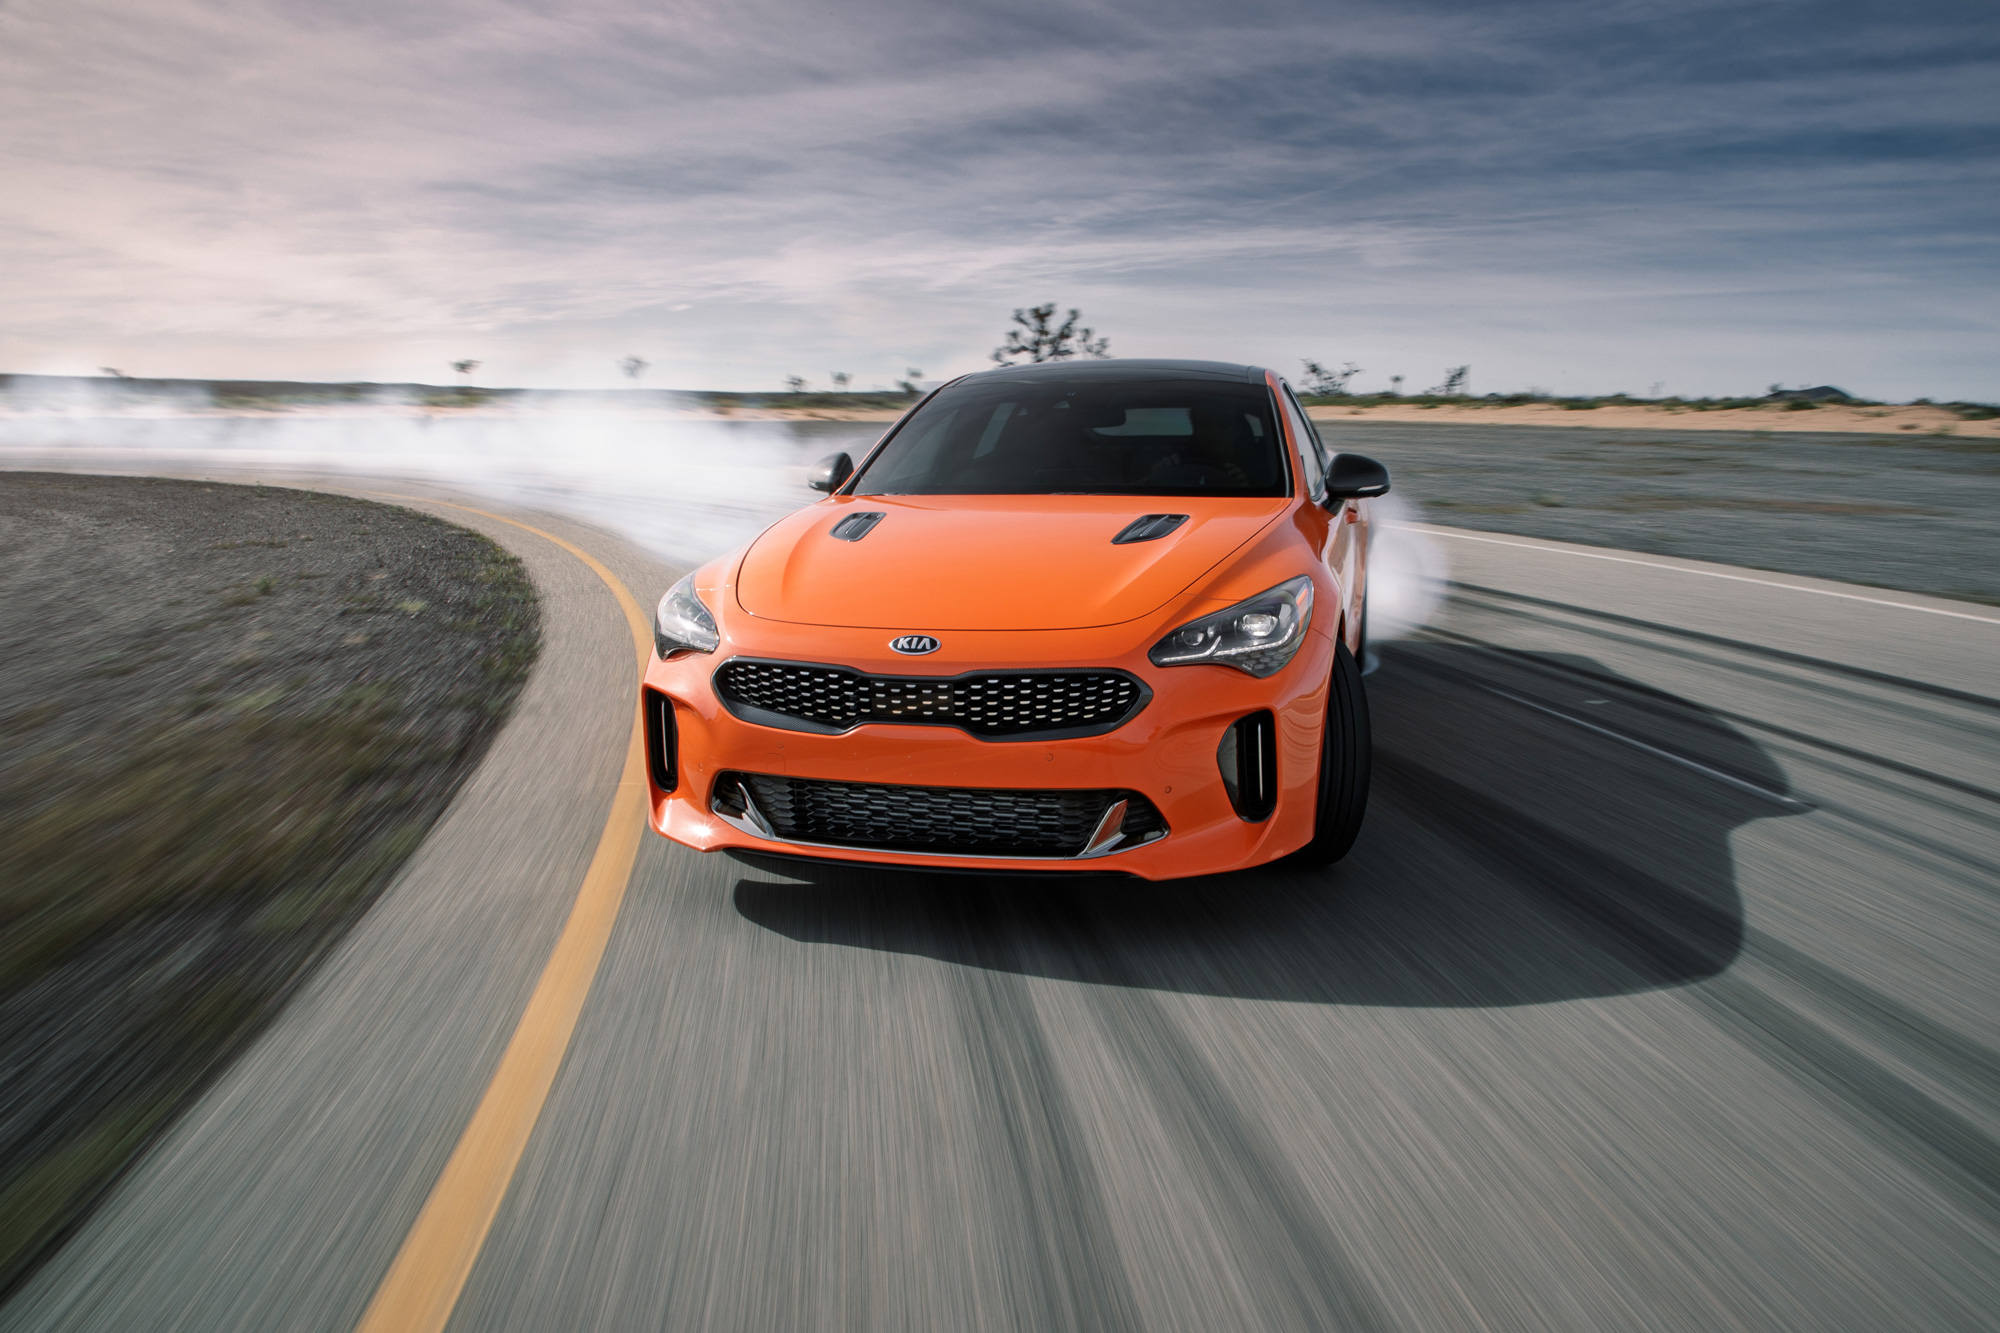 Kia turns up the heat with the Stinger GTS thumbnail